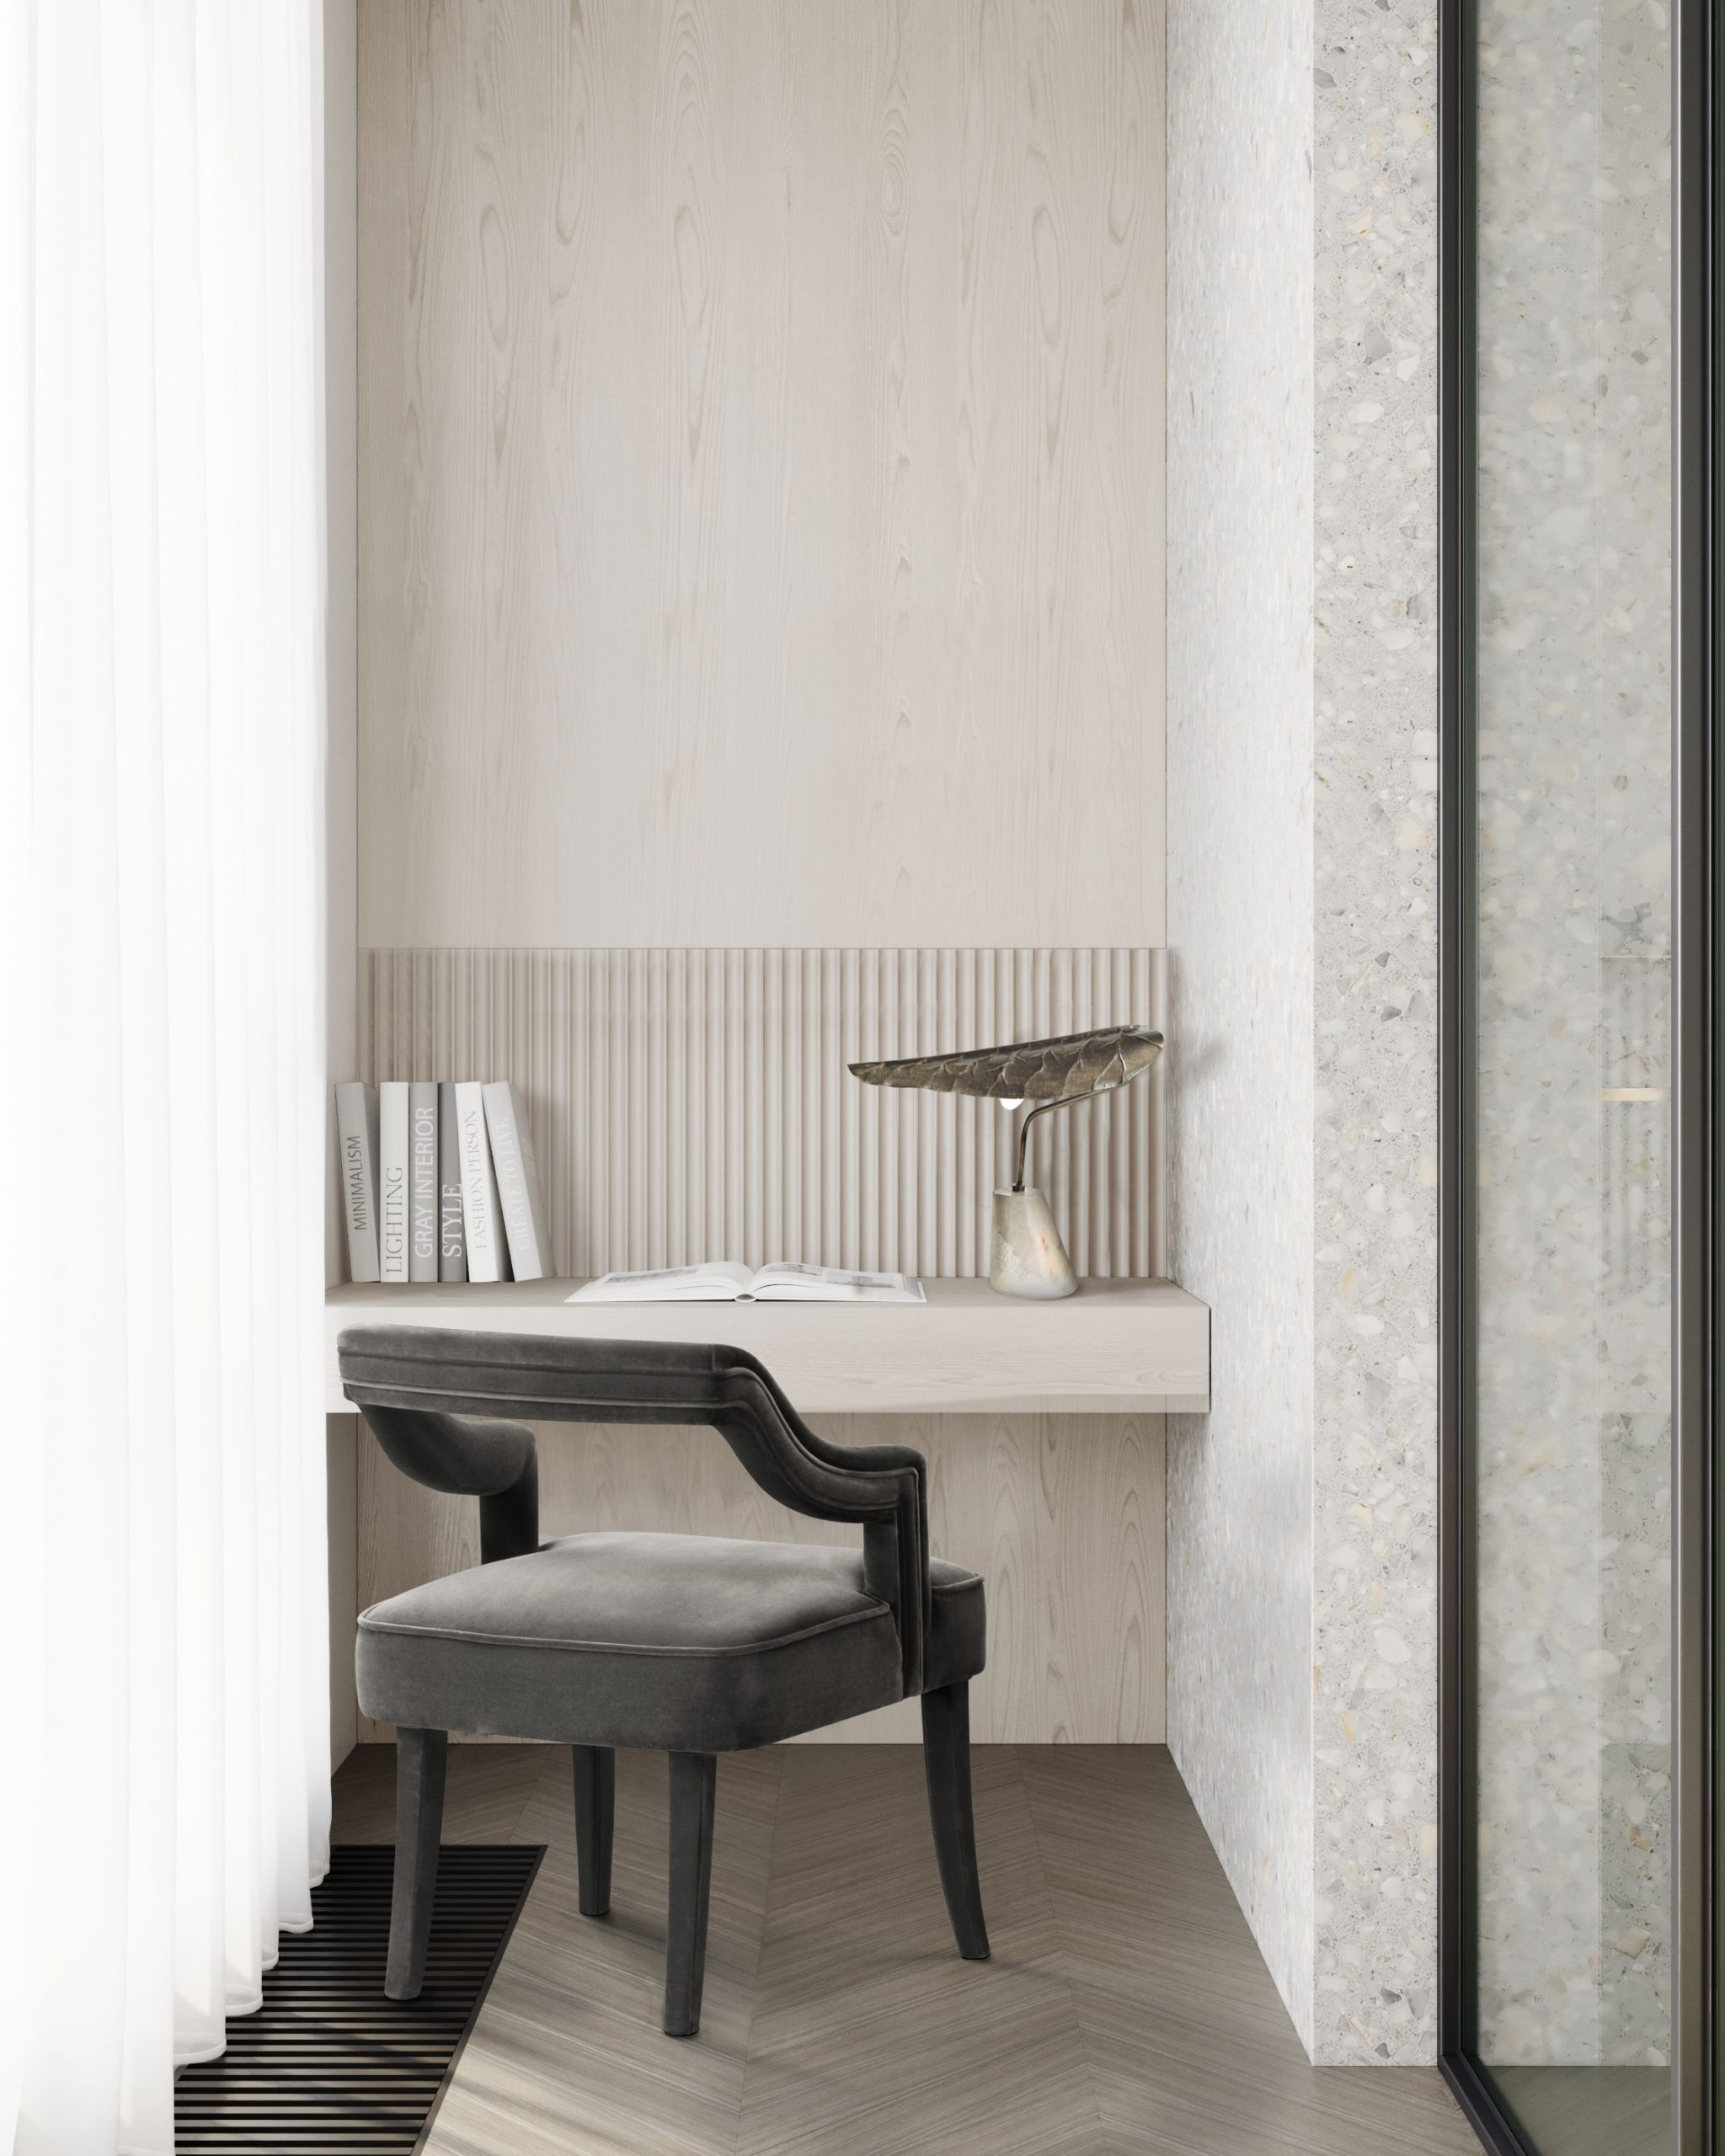 Monochromatic Look: How To Create Modern Rooms With One Colour monochromatic look Monochromatic Look: How To Create Modern Rooms With One Colour oka dining modern scaled